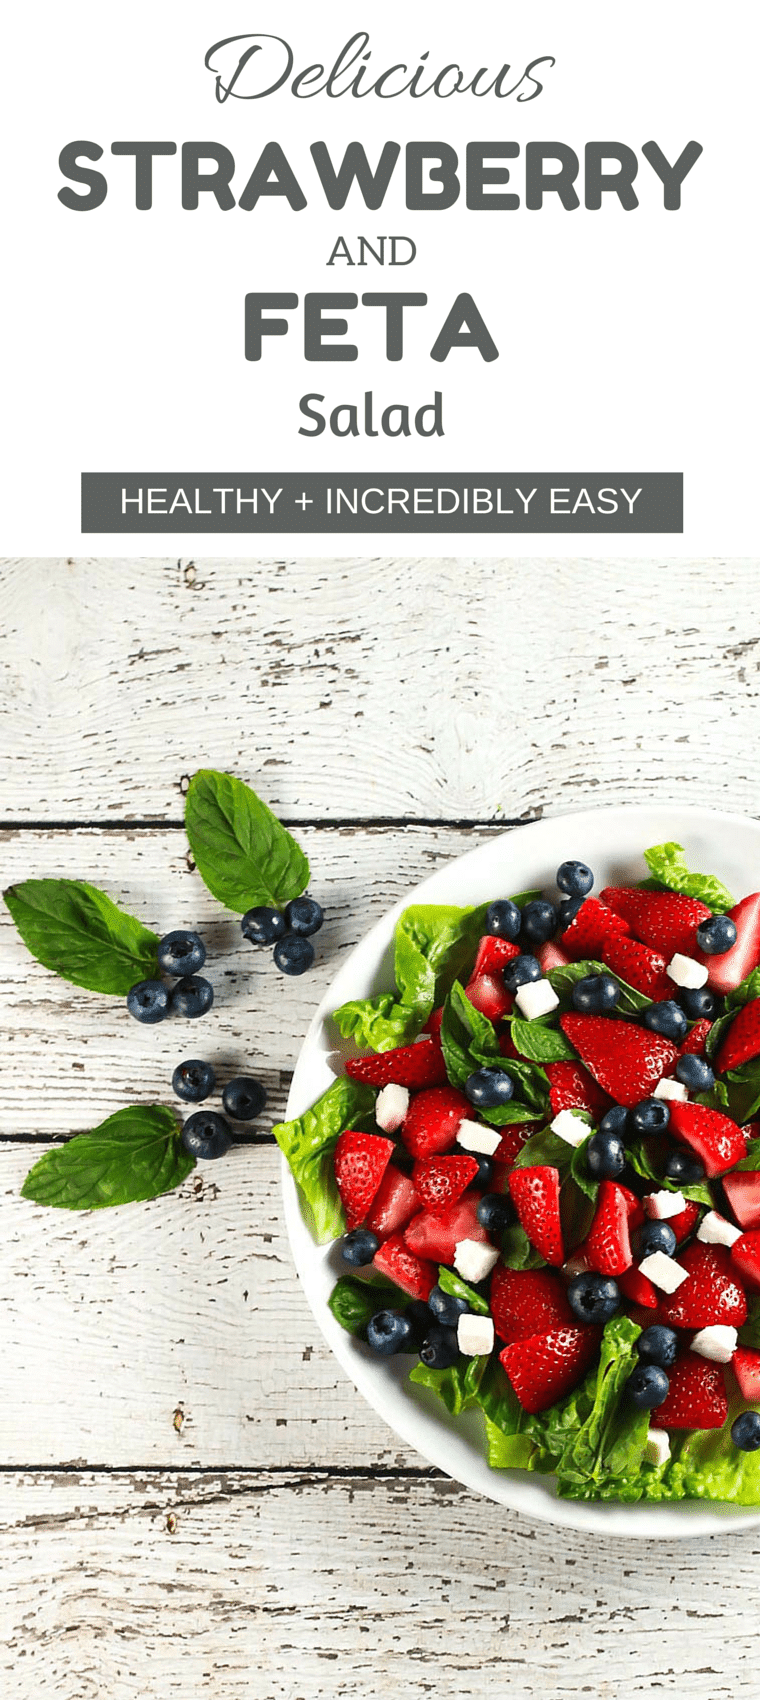 Delicious Strawberry and Feta Salad - This salad is SO fresh and delicious! Plus it's ready in no time so you have no excuse to not have a salad today!   ScrambledChefs.com